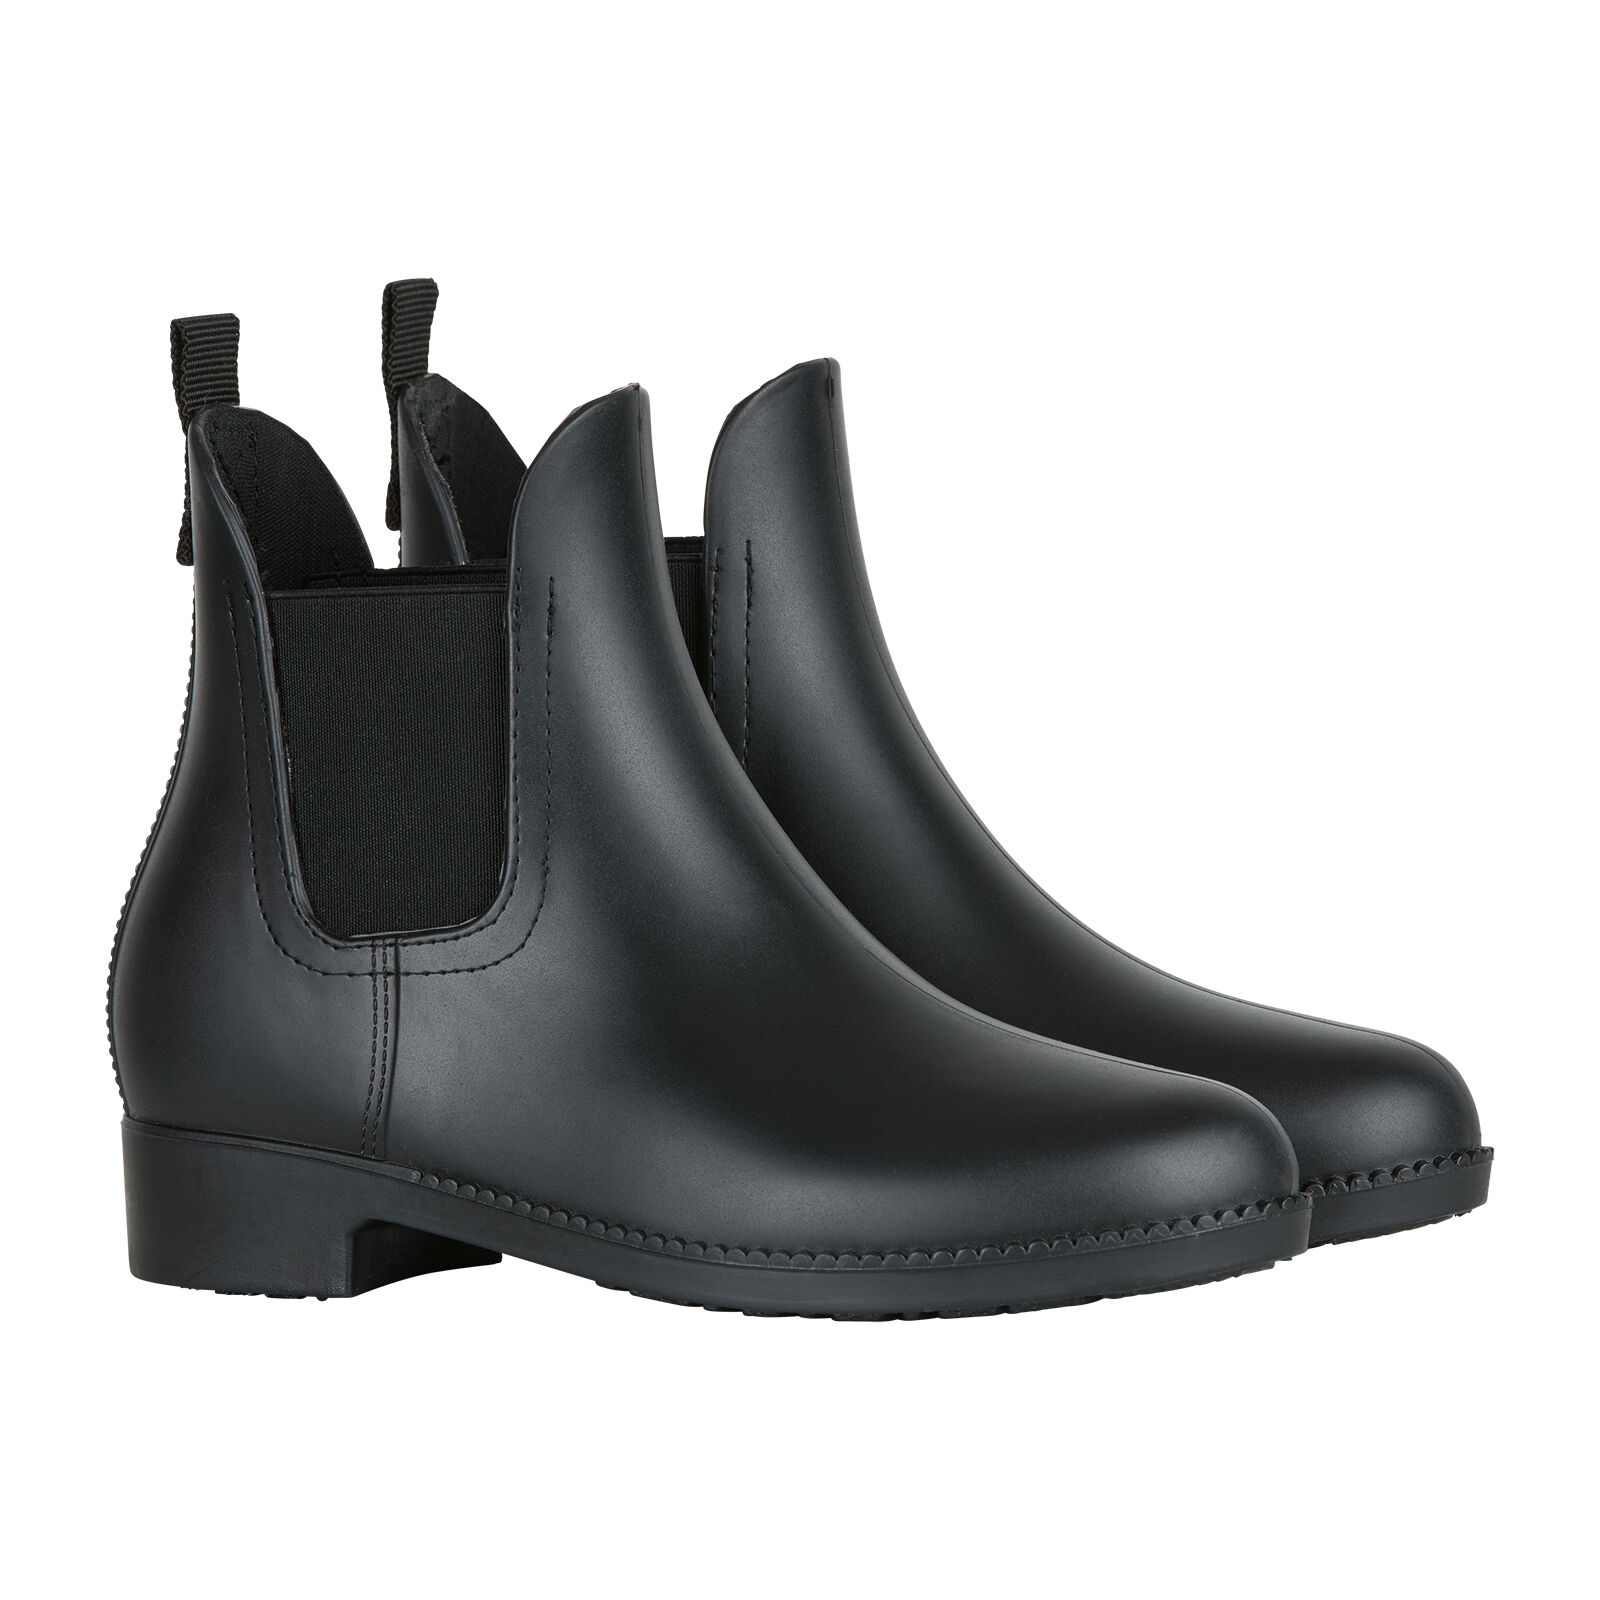 Buy affordable Jodhpur Boots now